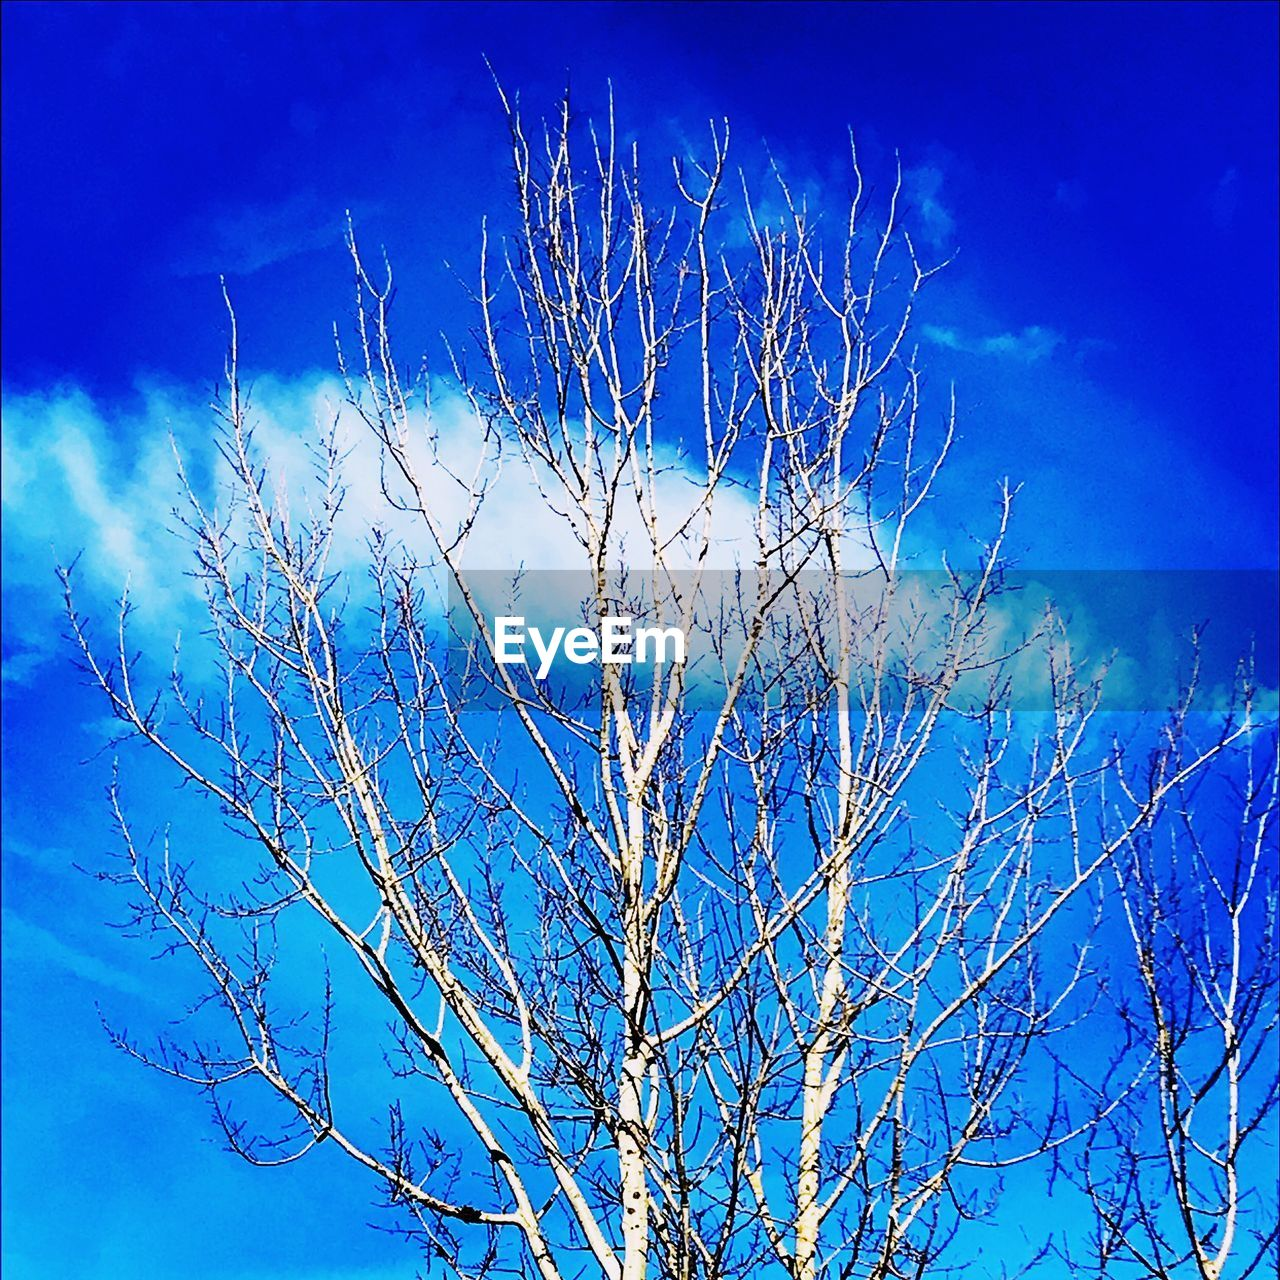 blue, sky, plant, nature, low angle view, tree, branch, no people, cloud - sky, growth, beauty in nature, bare tree, tranquility, day, outdoors, sunlight, bare, scenics - nature, spring, flowering plant, dead plant